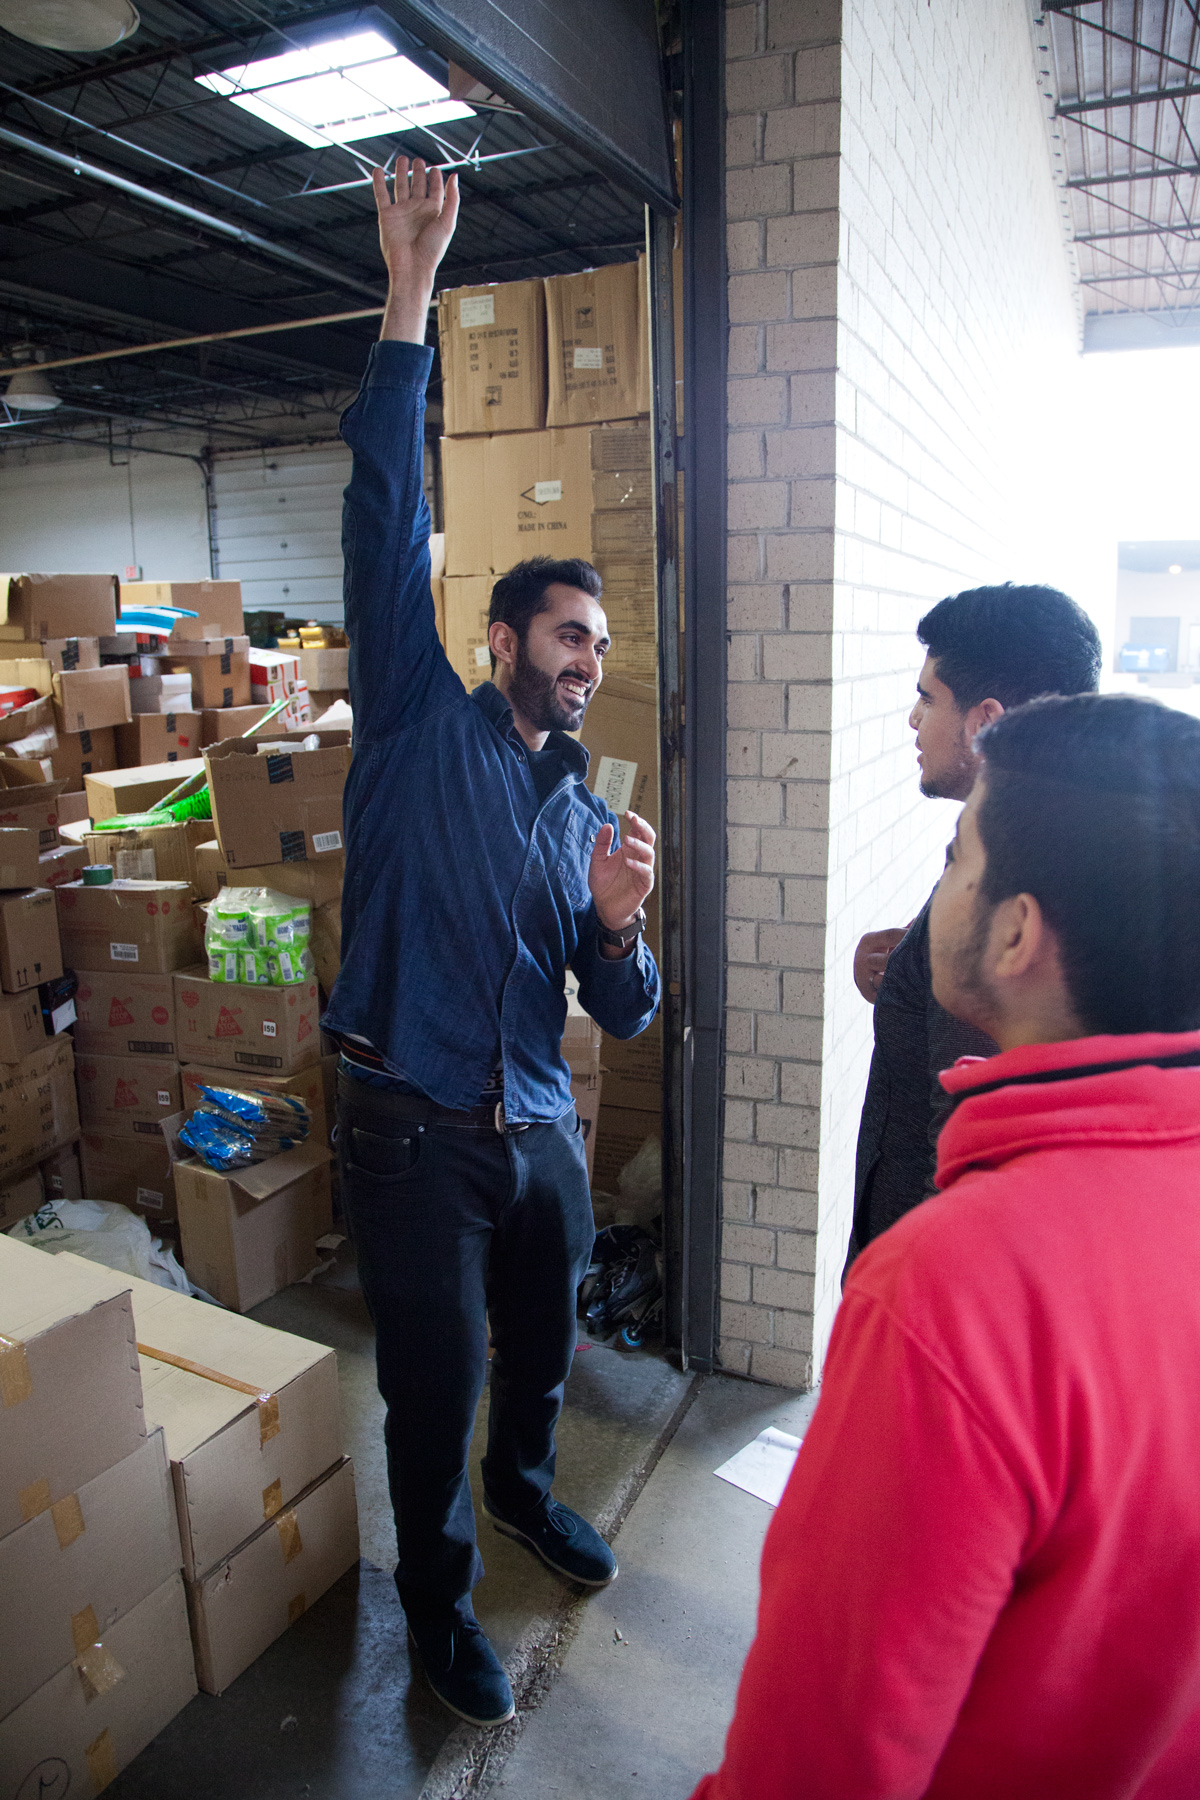 Almaleh at his import-export business. (Andrew Gill/WBEZ)